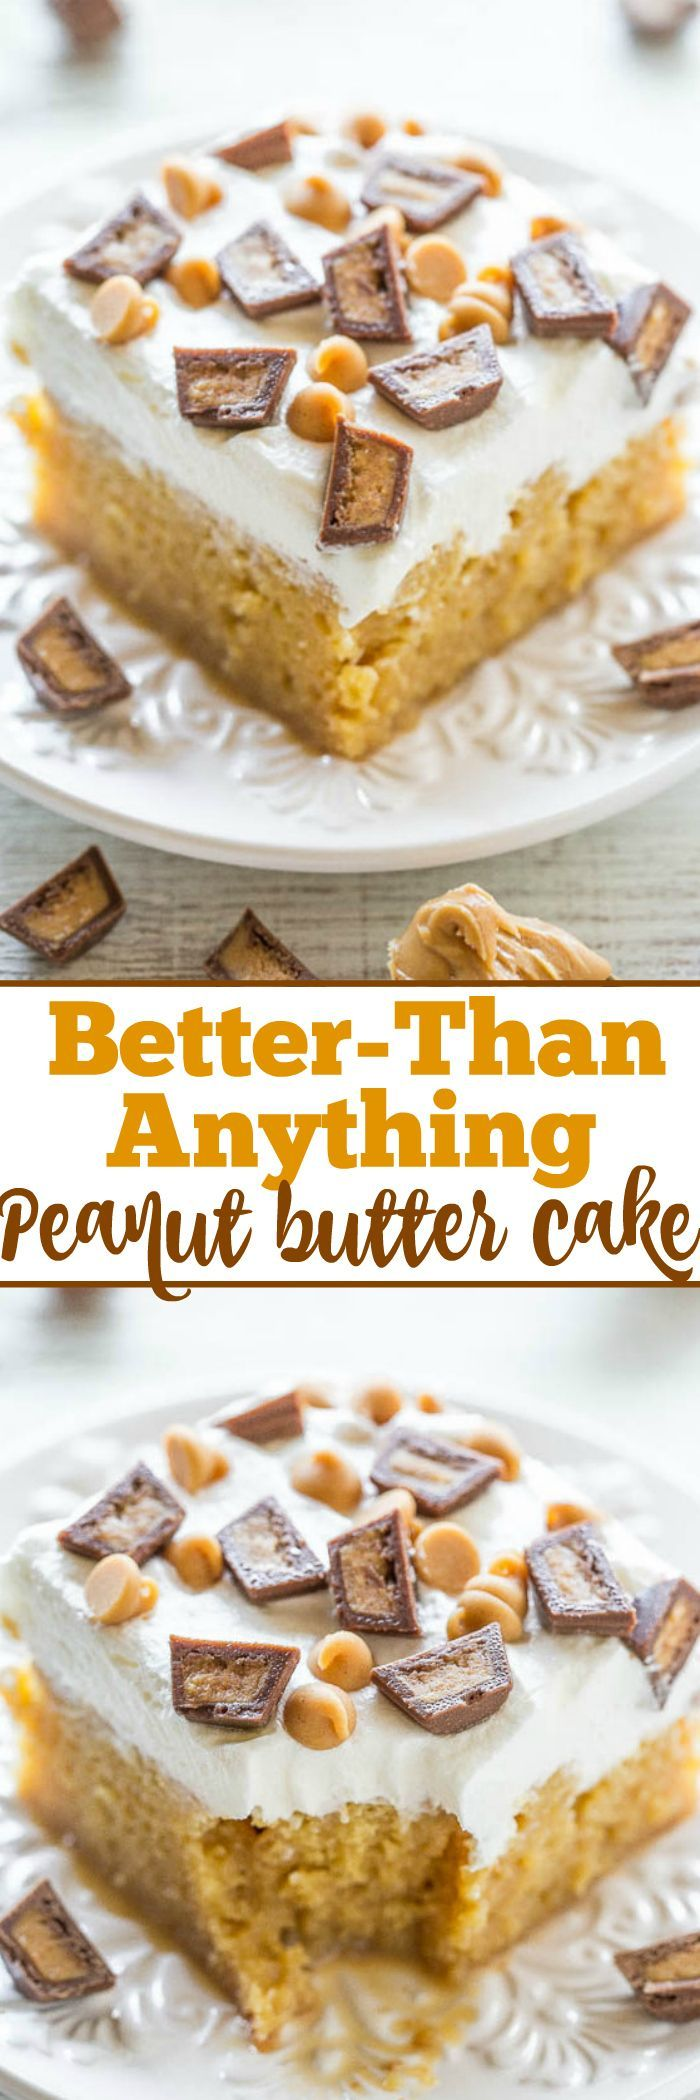 Better-Than-Anything Peanut Butter Cake – A peanut butter lovers dream: PB, PB chips, and PB cups! An easy, no-mixer poke cake that's drenched with caramel to keep it super moist! Lives up to it's name and tastes AMAZING! Great for parties!